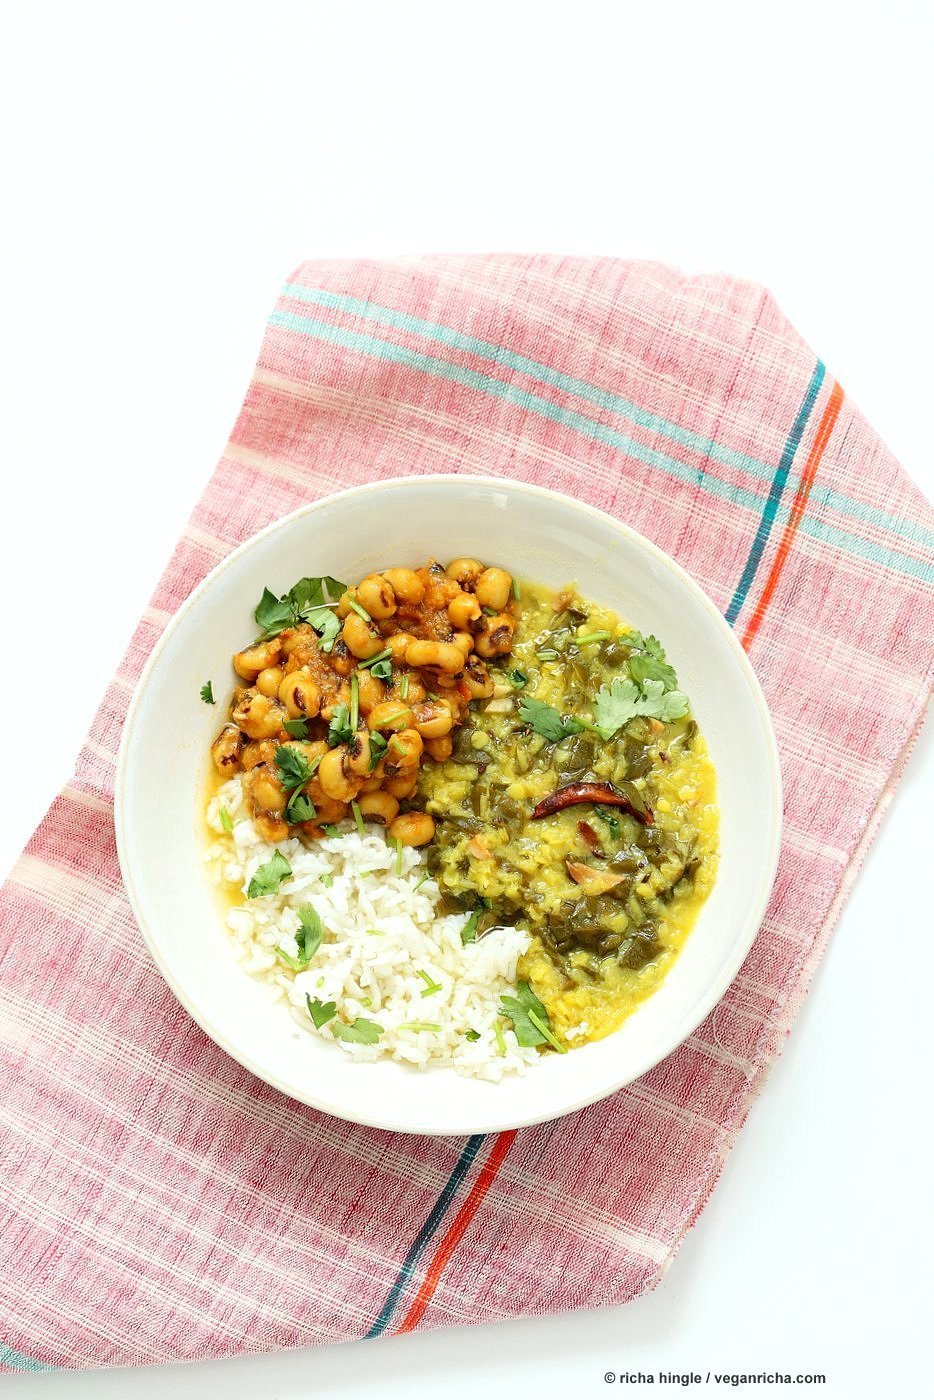 Spiced Lentil Chard Soup - Hariyali Dal. Creamy Red Lentils Cooked with Chard or other greens, tempered with whole spices. Easy weeknight Dahl. #Vegan #Glutenfree #Soyfree #Recipe | VeganRicha.com